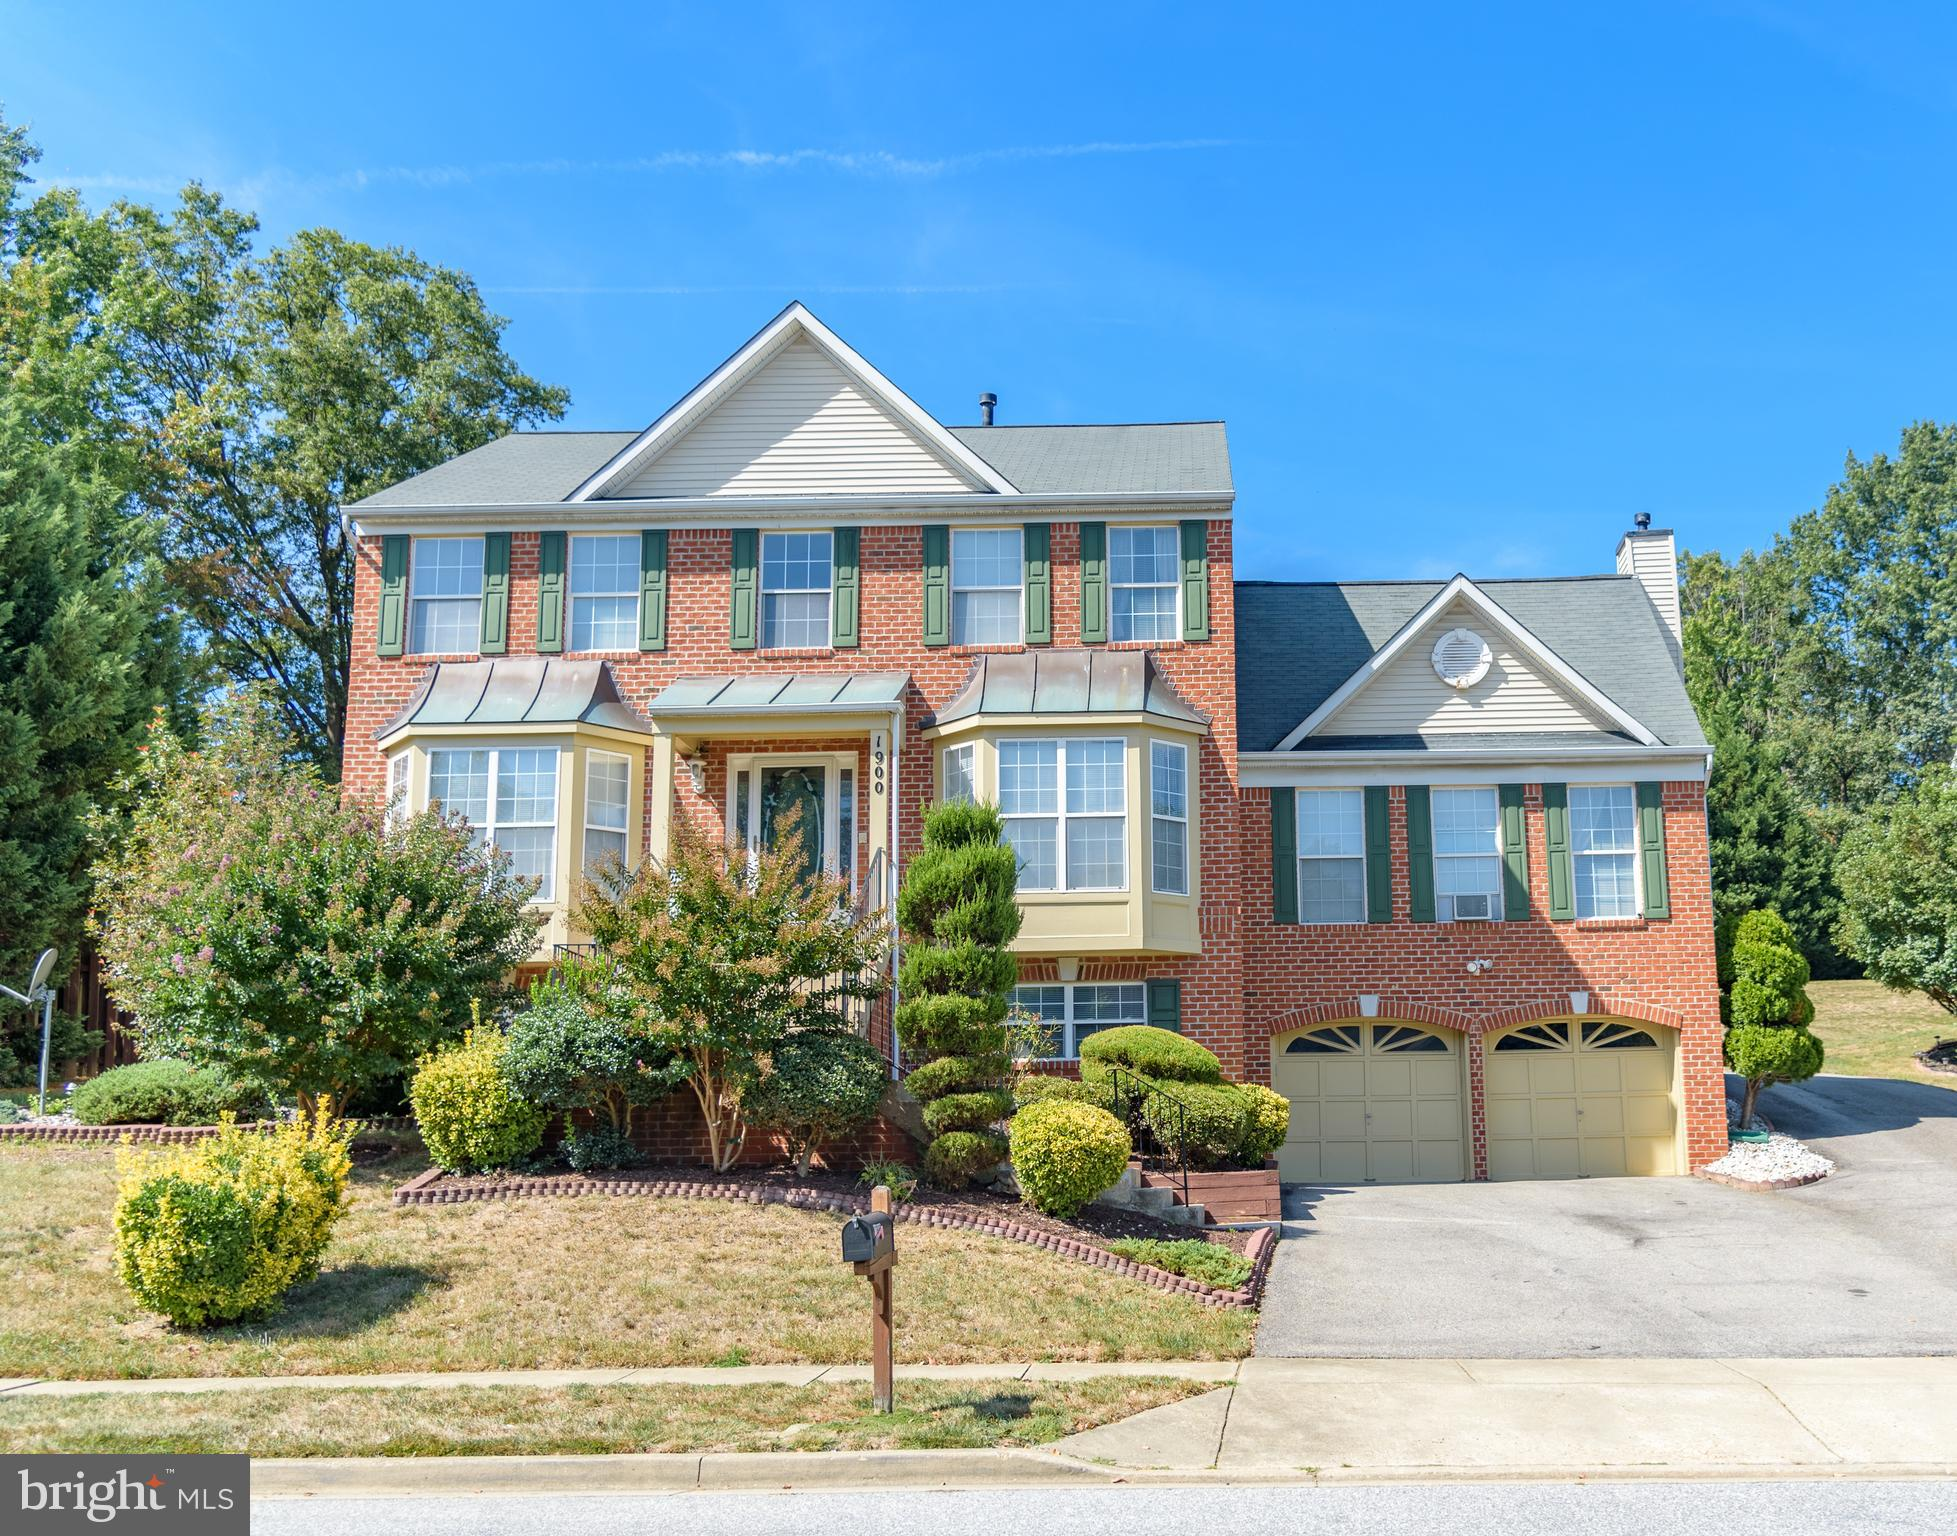 1900 HAMPSHIRE DRIVE, HYATTSVILLE, MD 20783